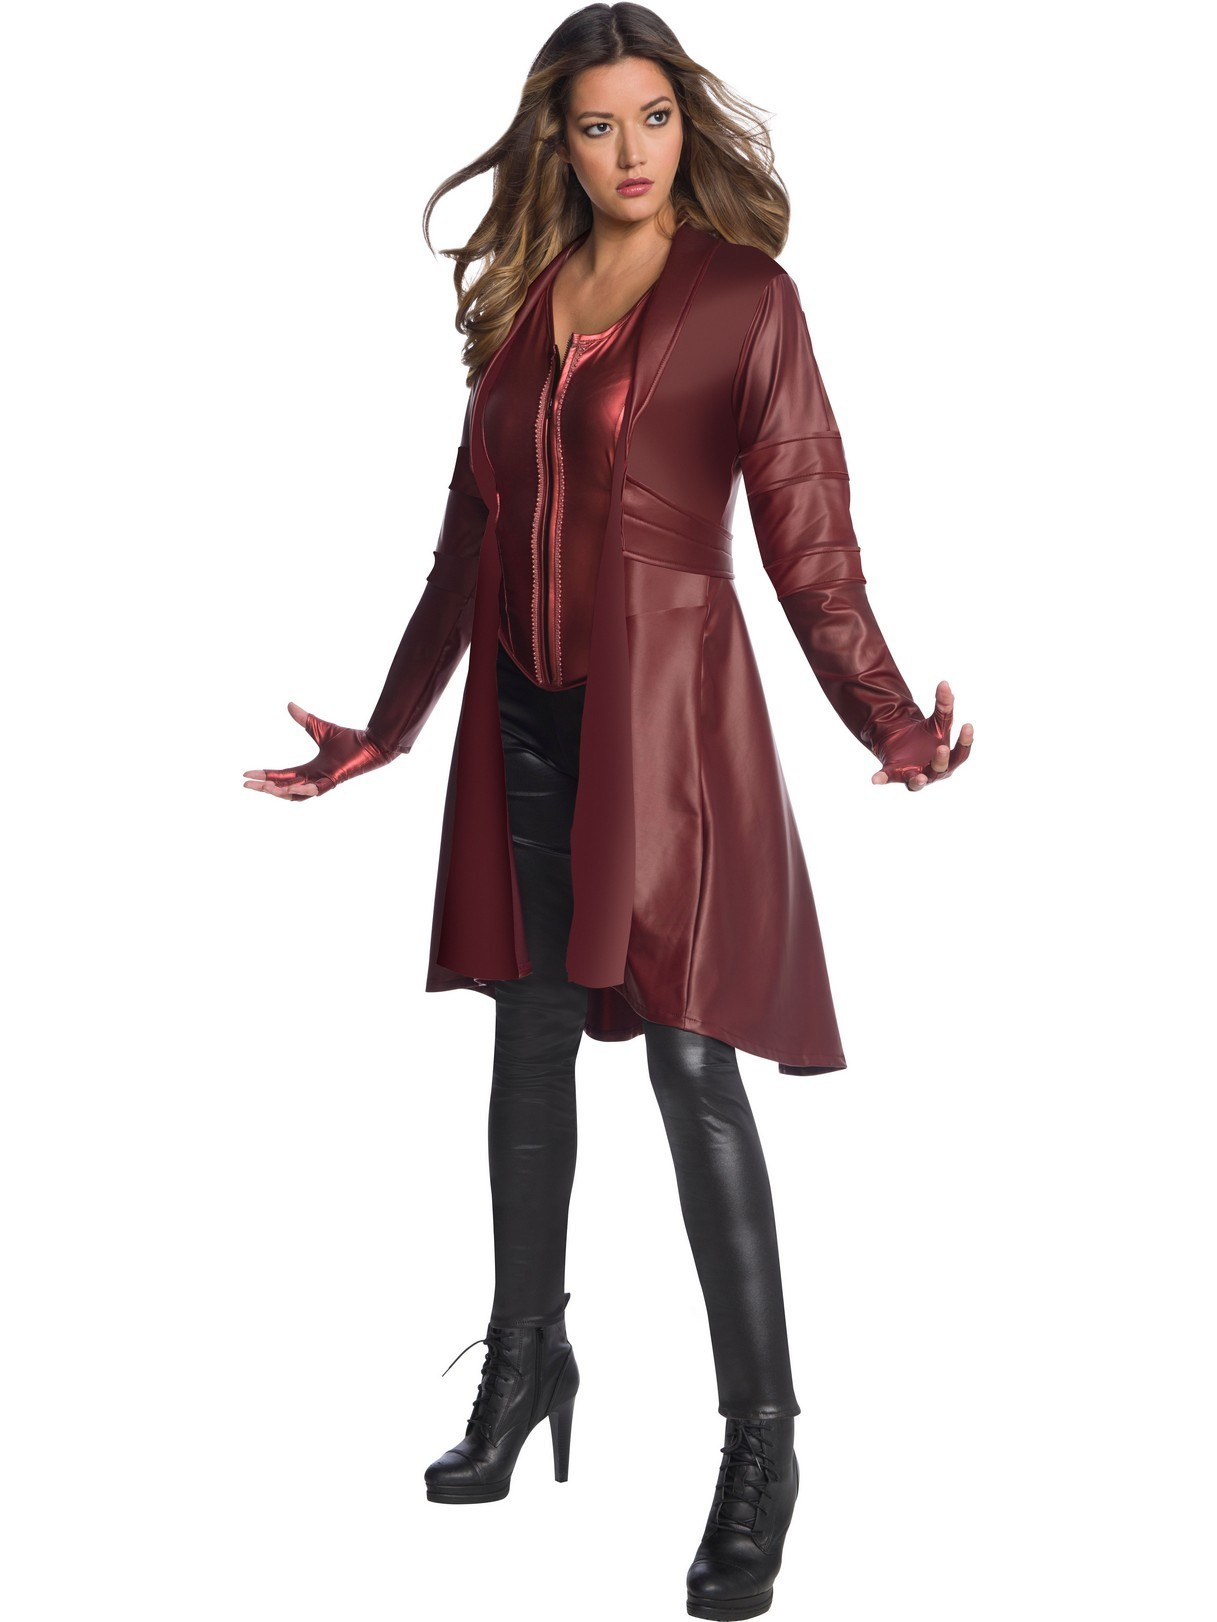 AVENGERS SCARLET WITCH COSTUME FOR WOMEN